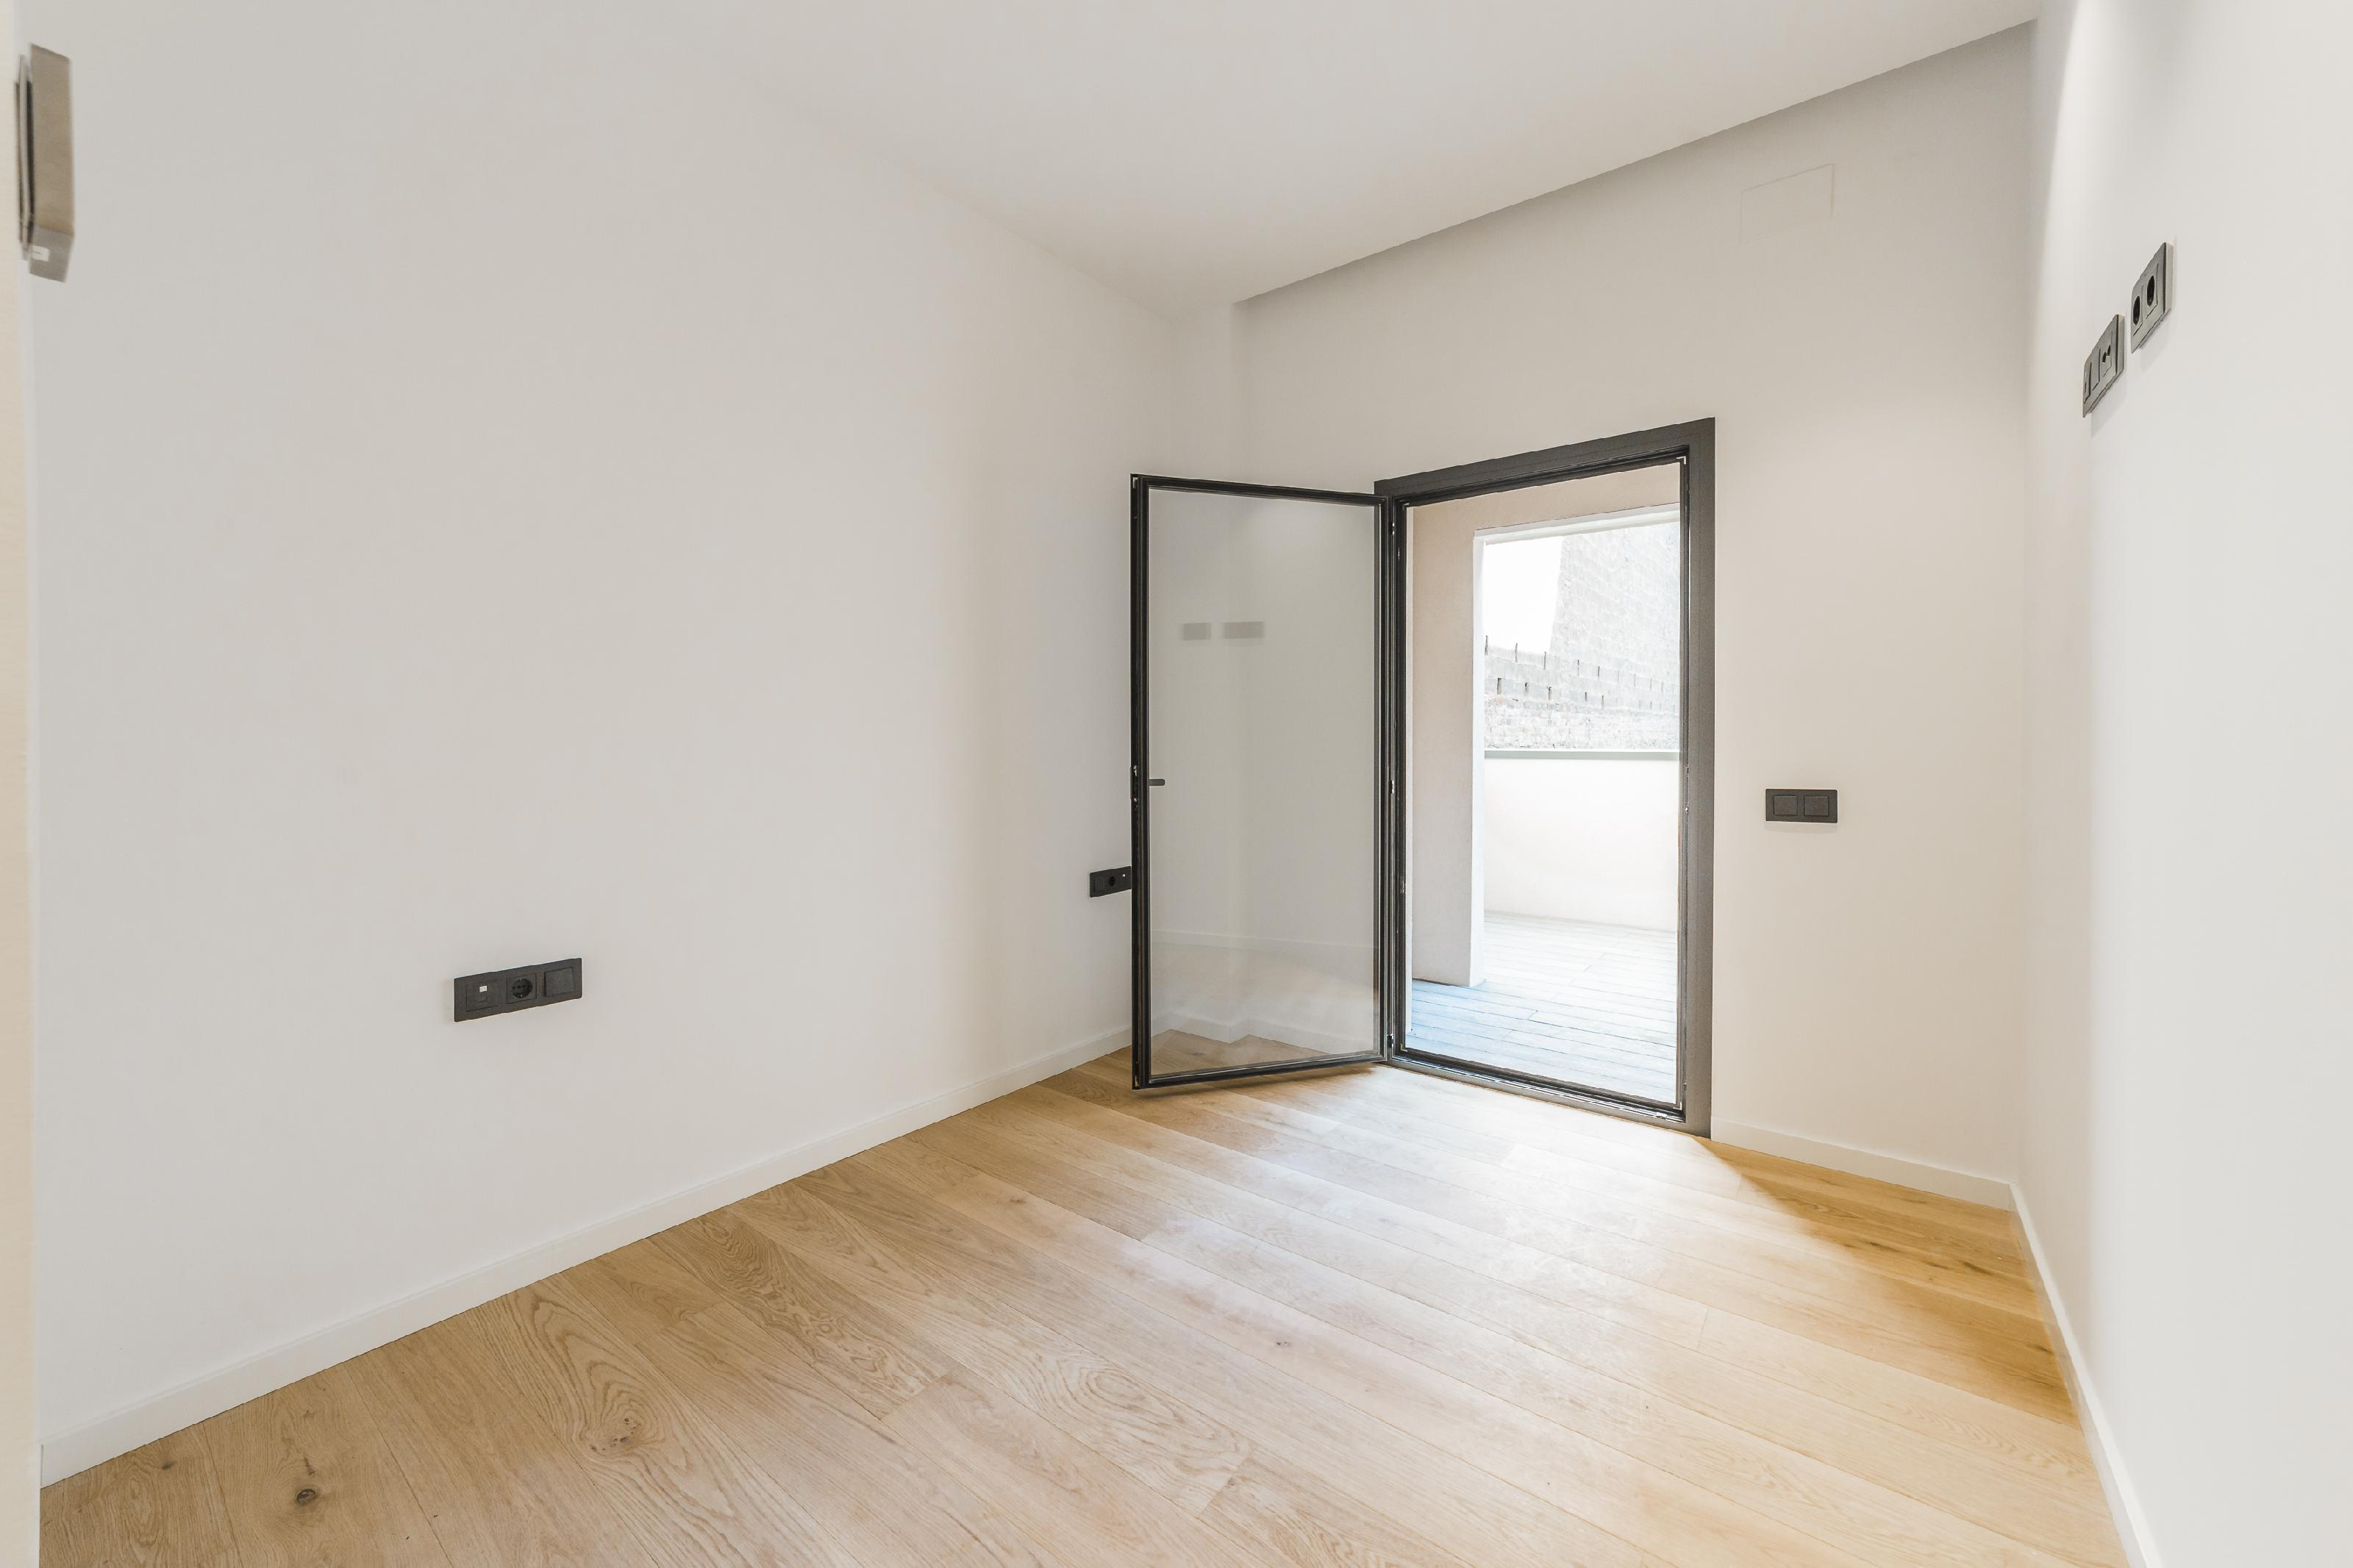 182176 Apartment for sale in Eixample, Old Left Eixample 21